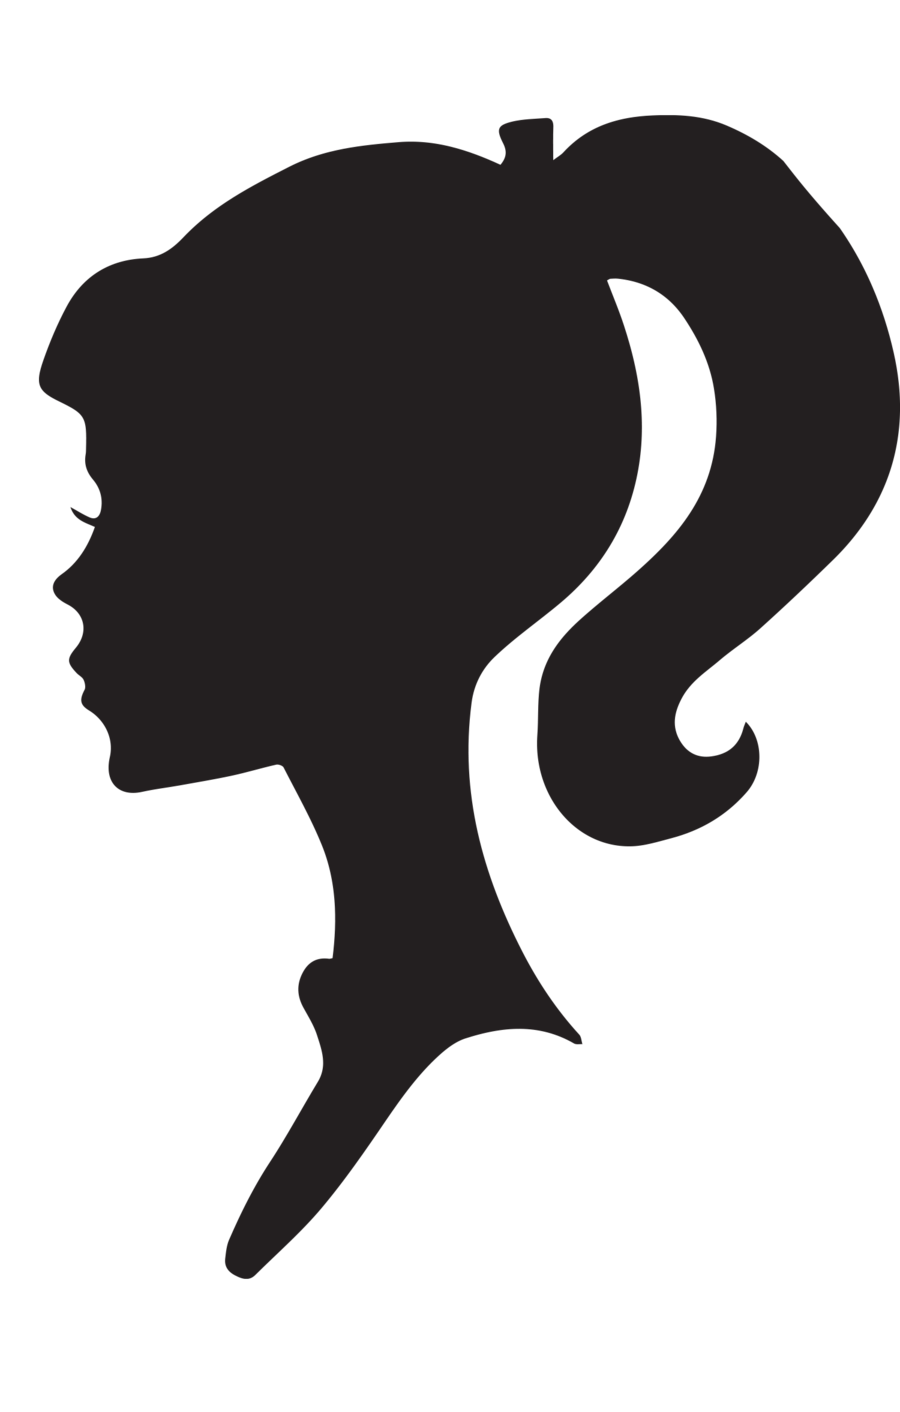 900x1412 Free Girl Silhouette, Hanslodge Clip Art Collection